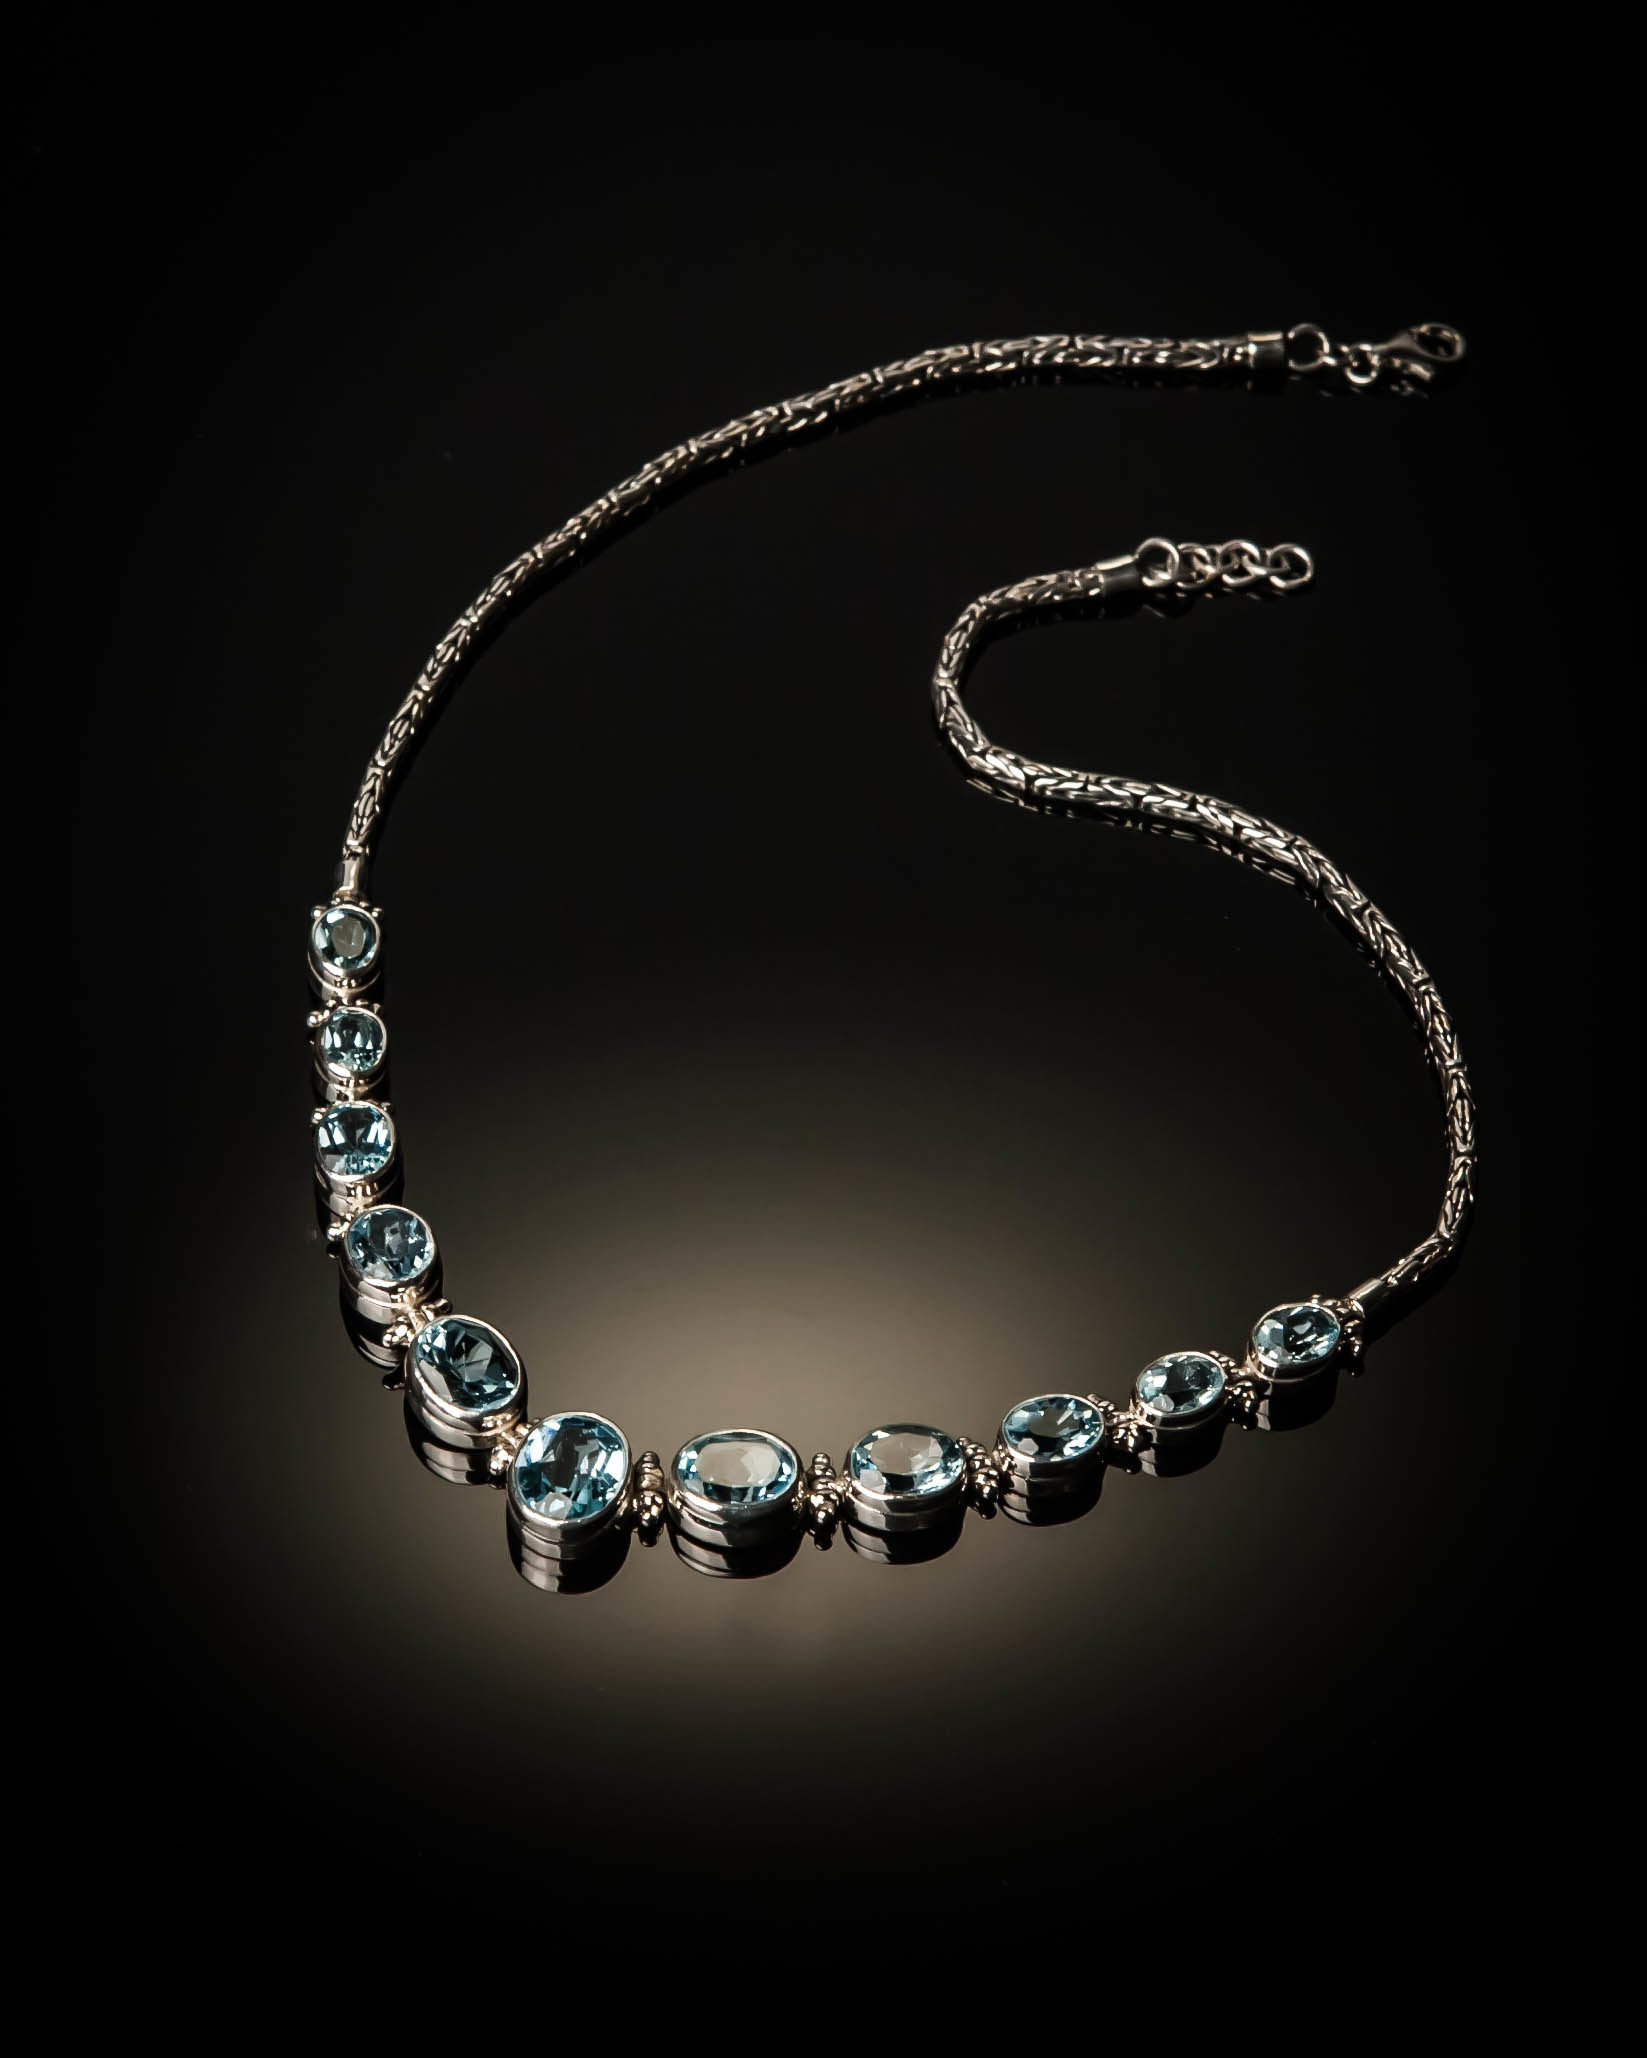 Sterling Silver Natural Blue Topaz Necklace AKL-XXX-Blue Topaz